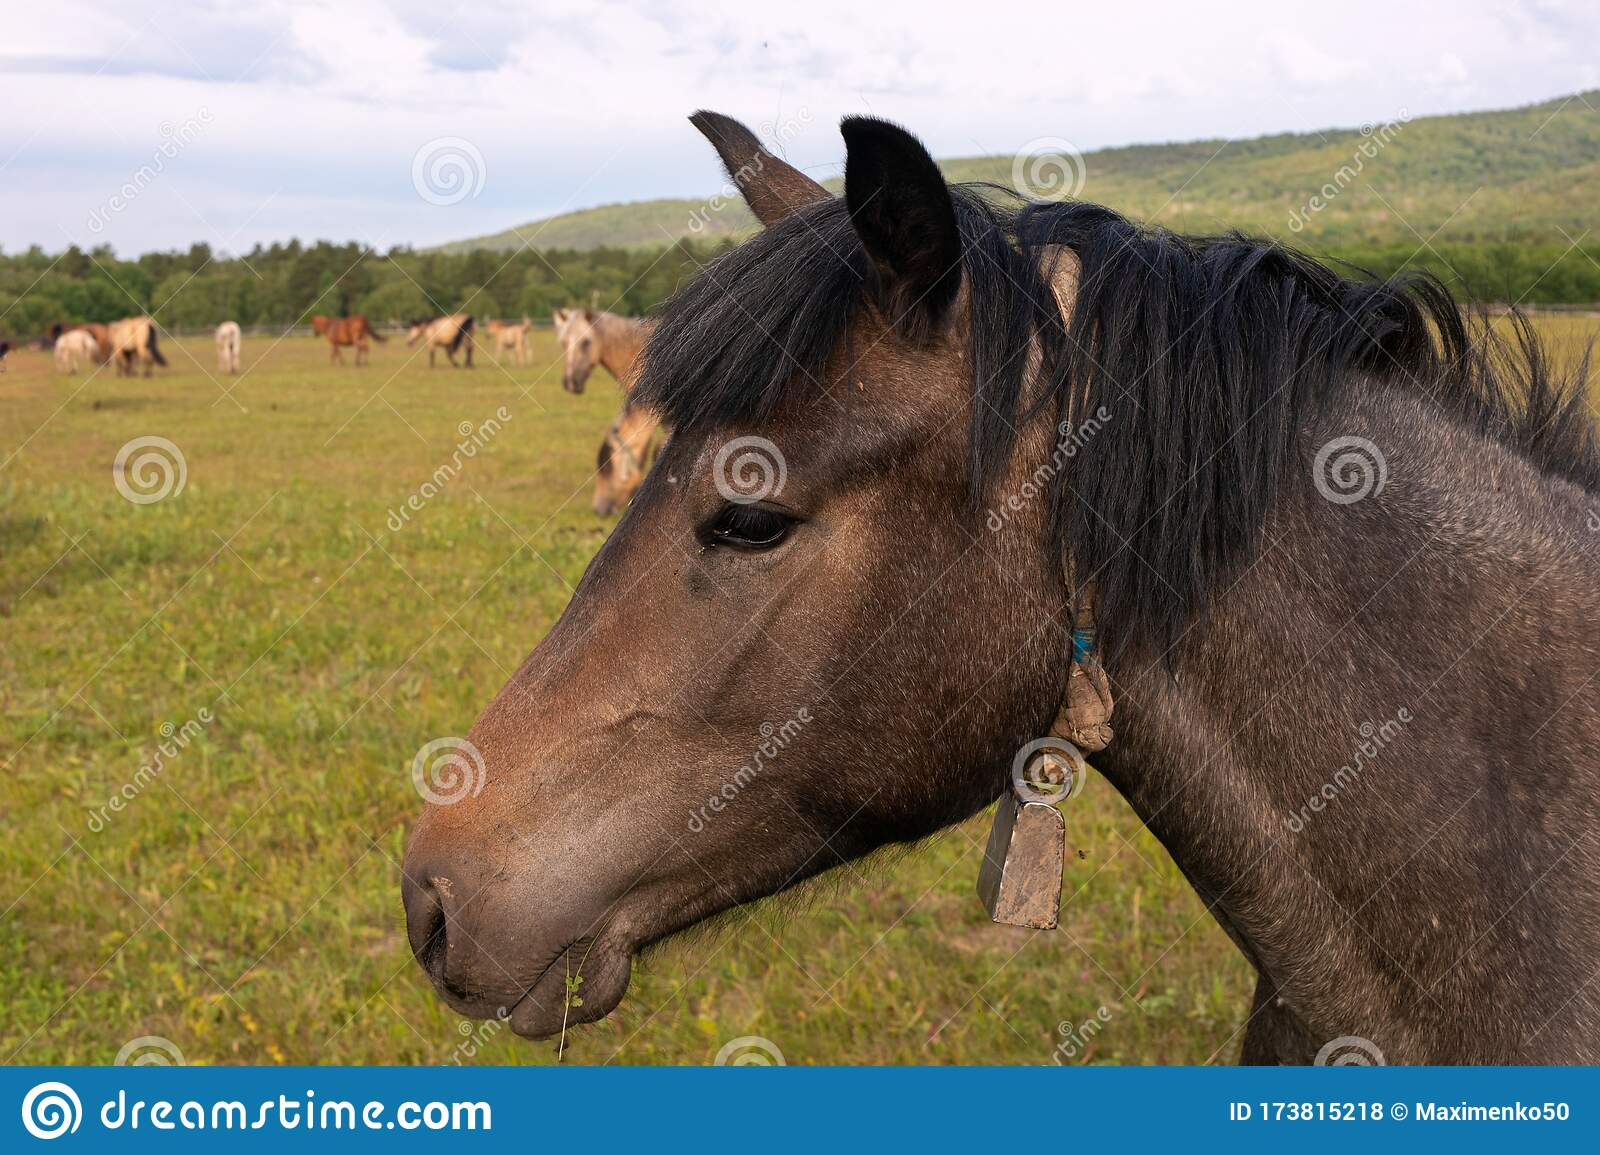 Horse Face Side View In Center Of Photograph On Background Of Pasture And Herd Of Horses Stock Photo Image Of Portrait View 173815218